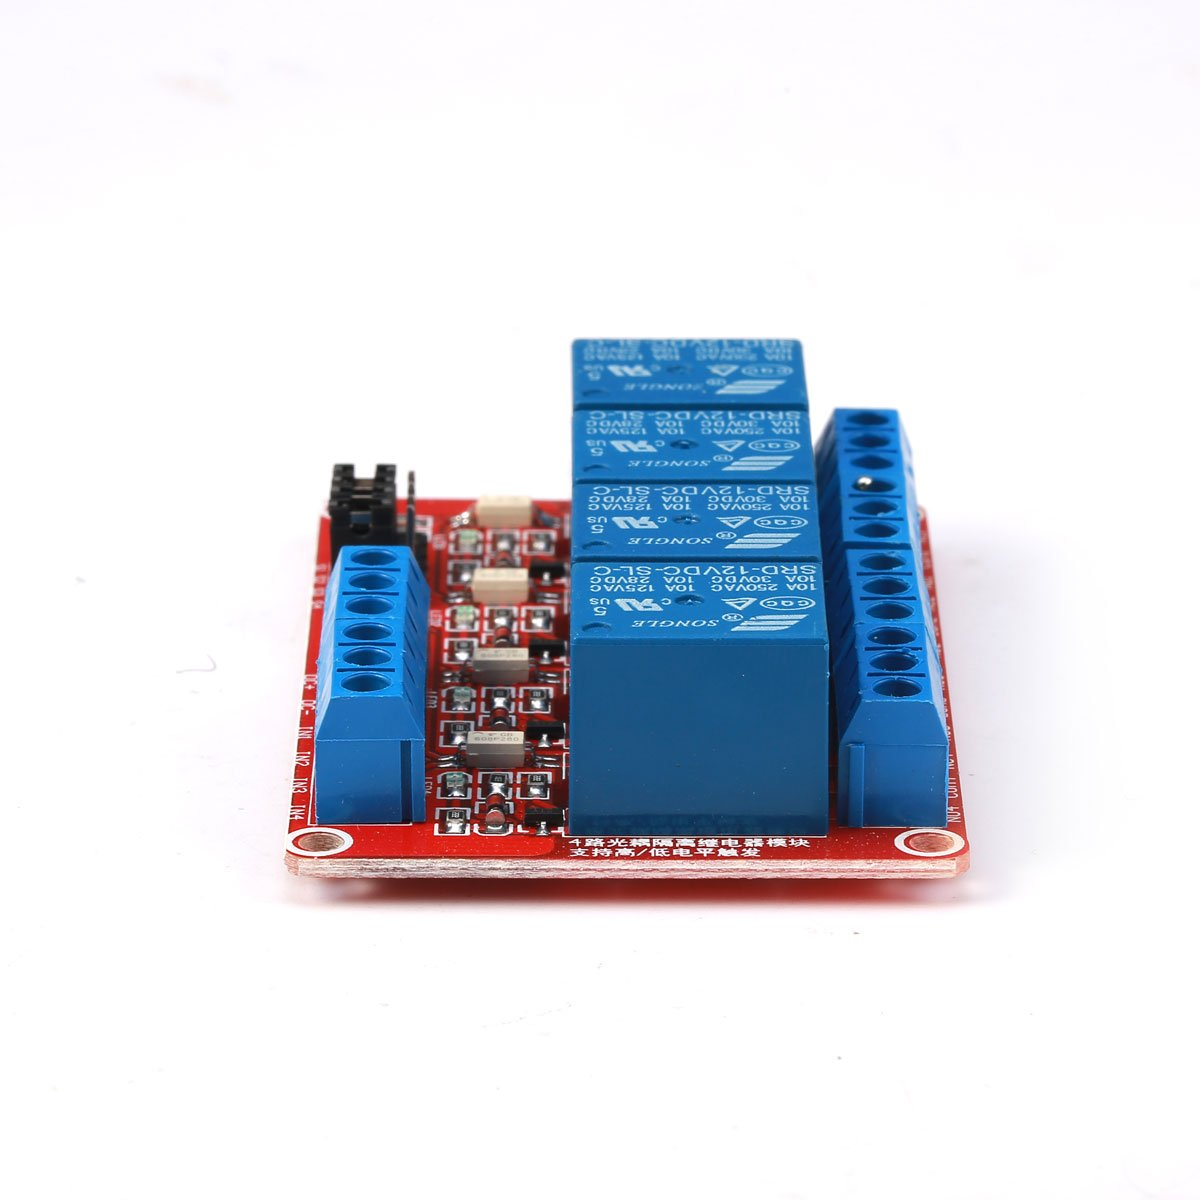 Geri 12v 4 Channel Relay Module With Optocoupler H L Level Triger Dc5v To Dc30v Converter By 74hc14 For Arduino